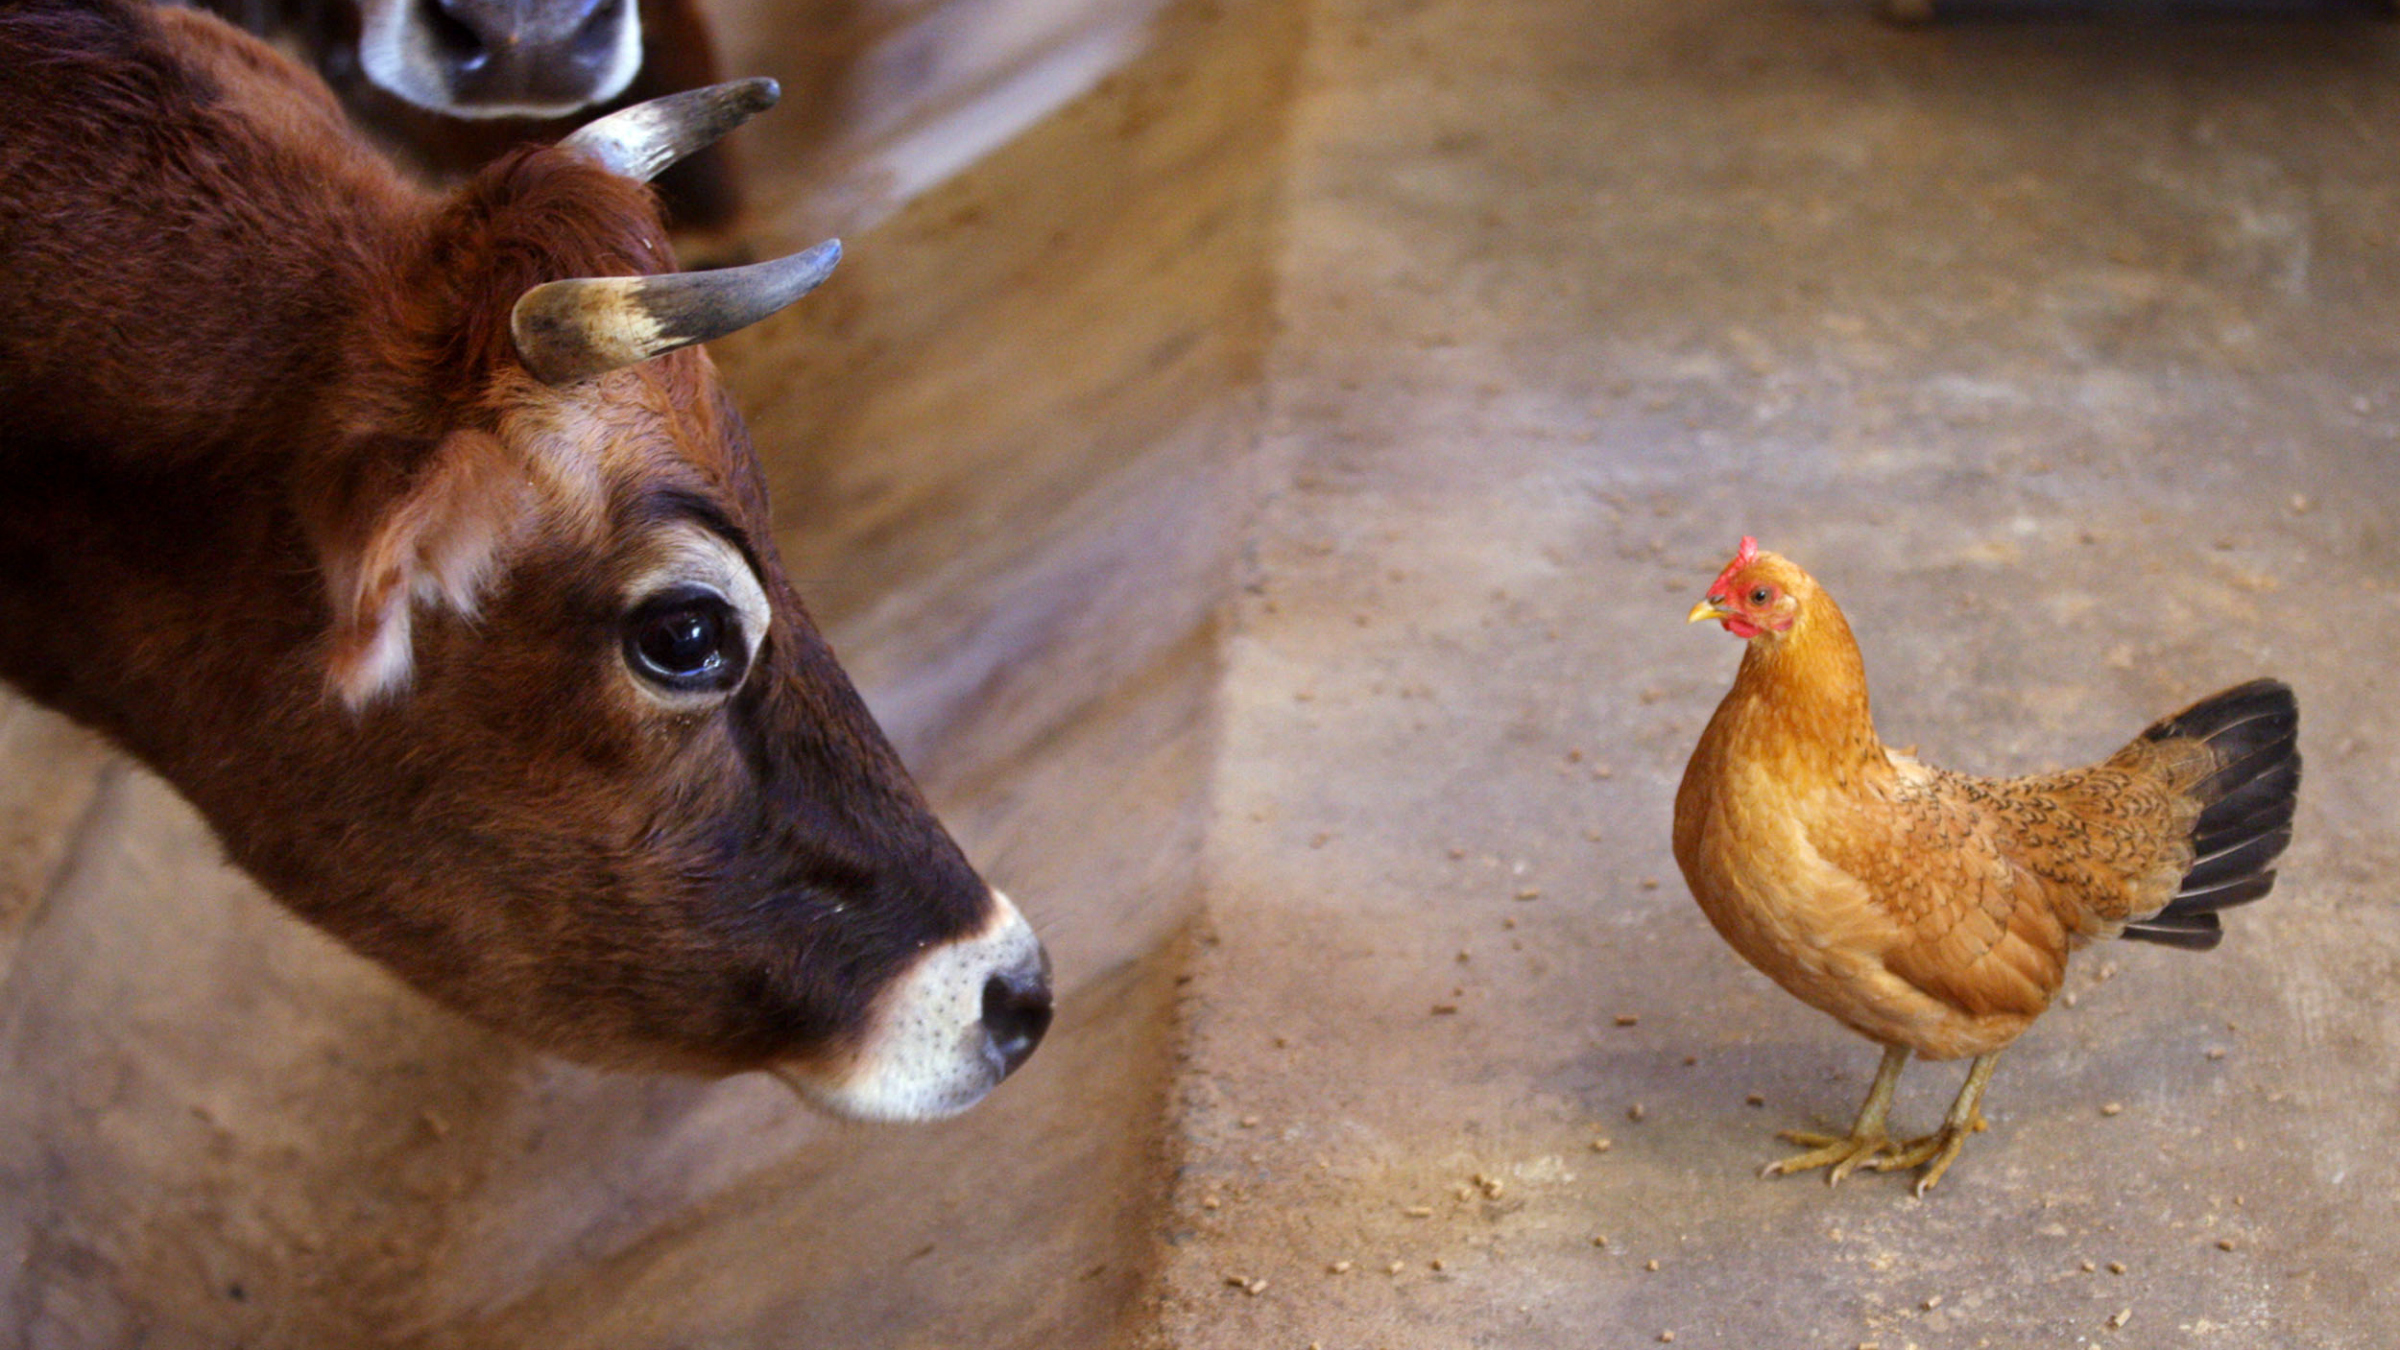 Cow and chicken, face to face.